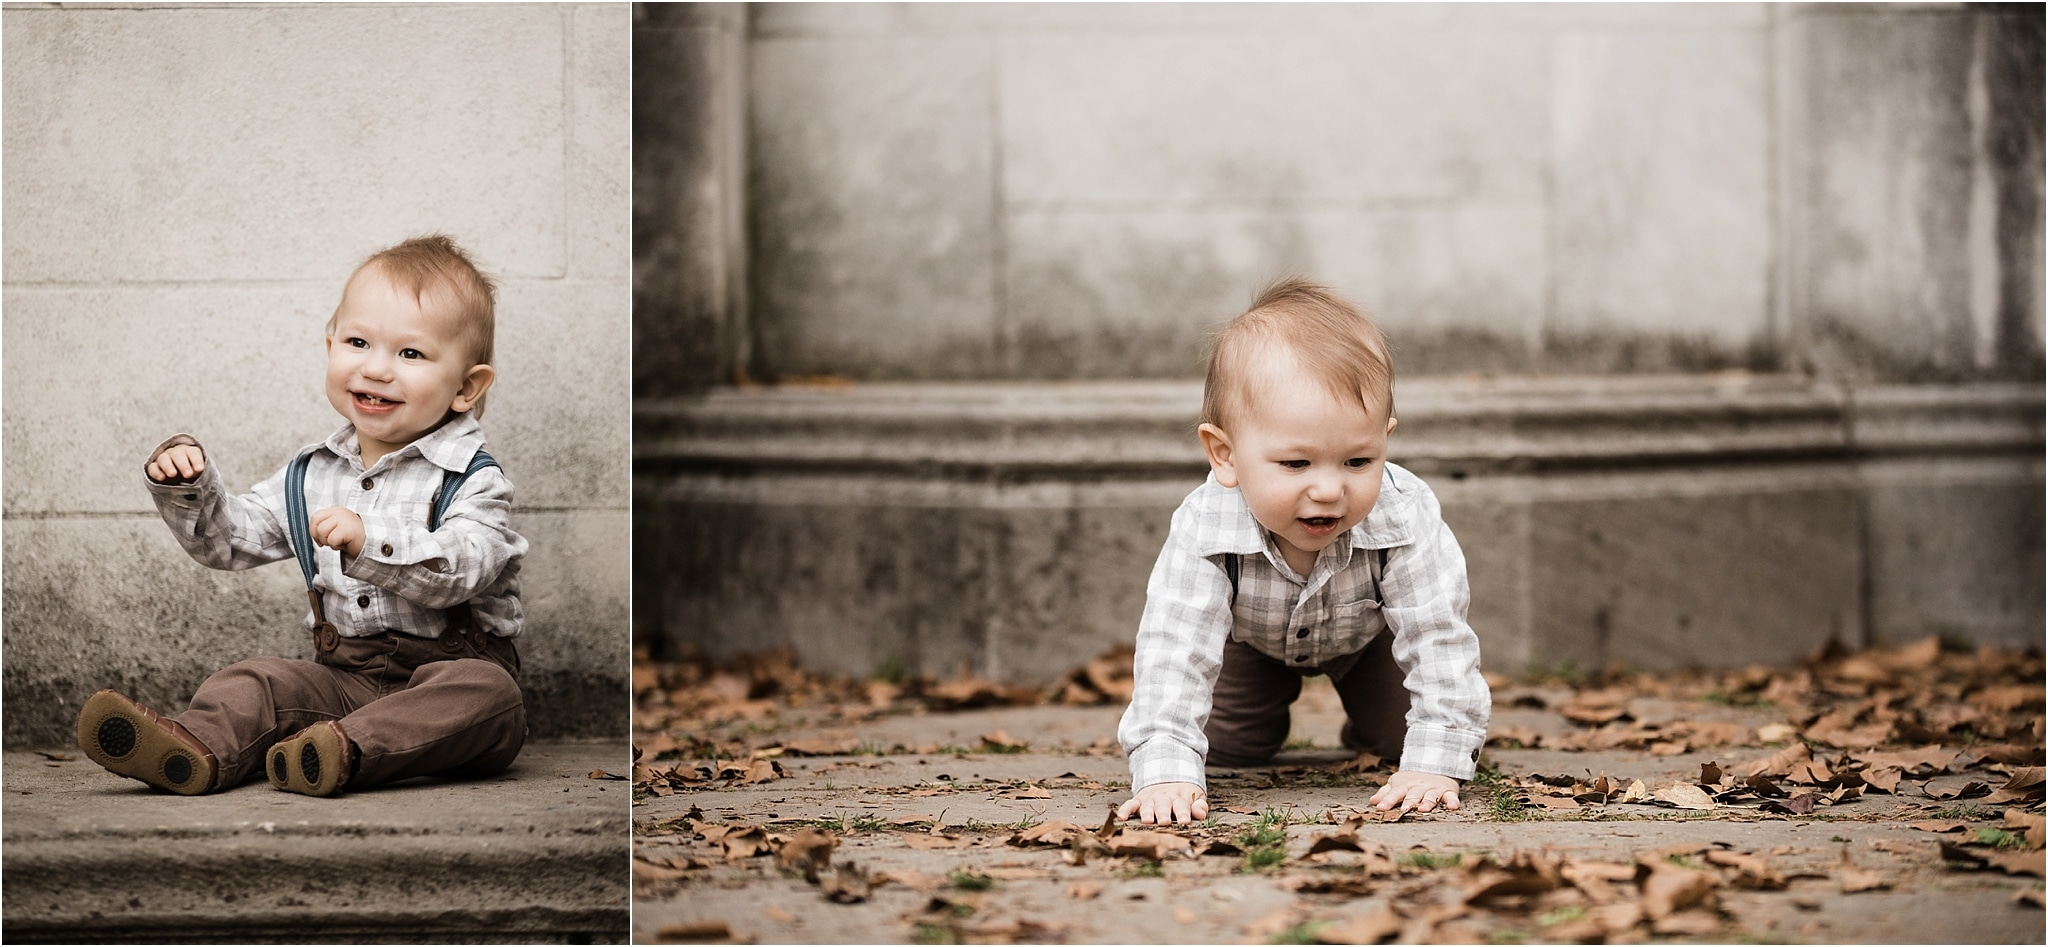 crawling baby photos